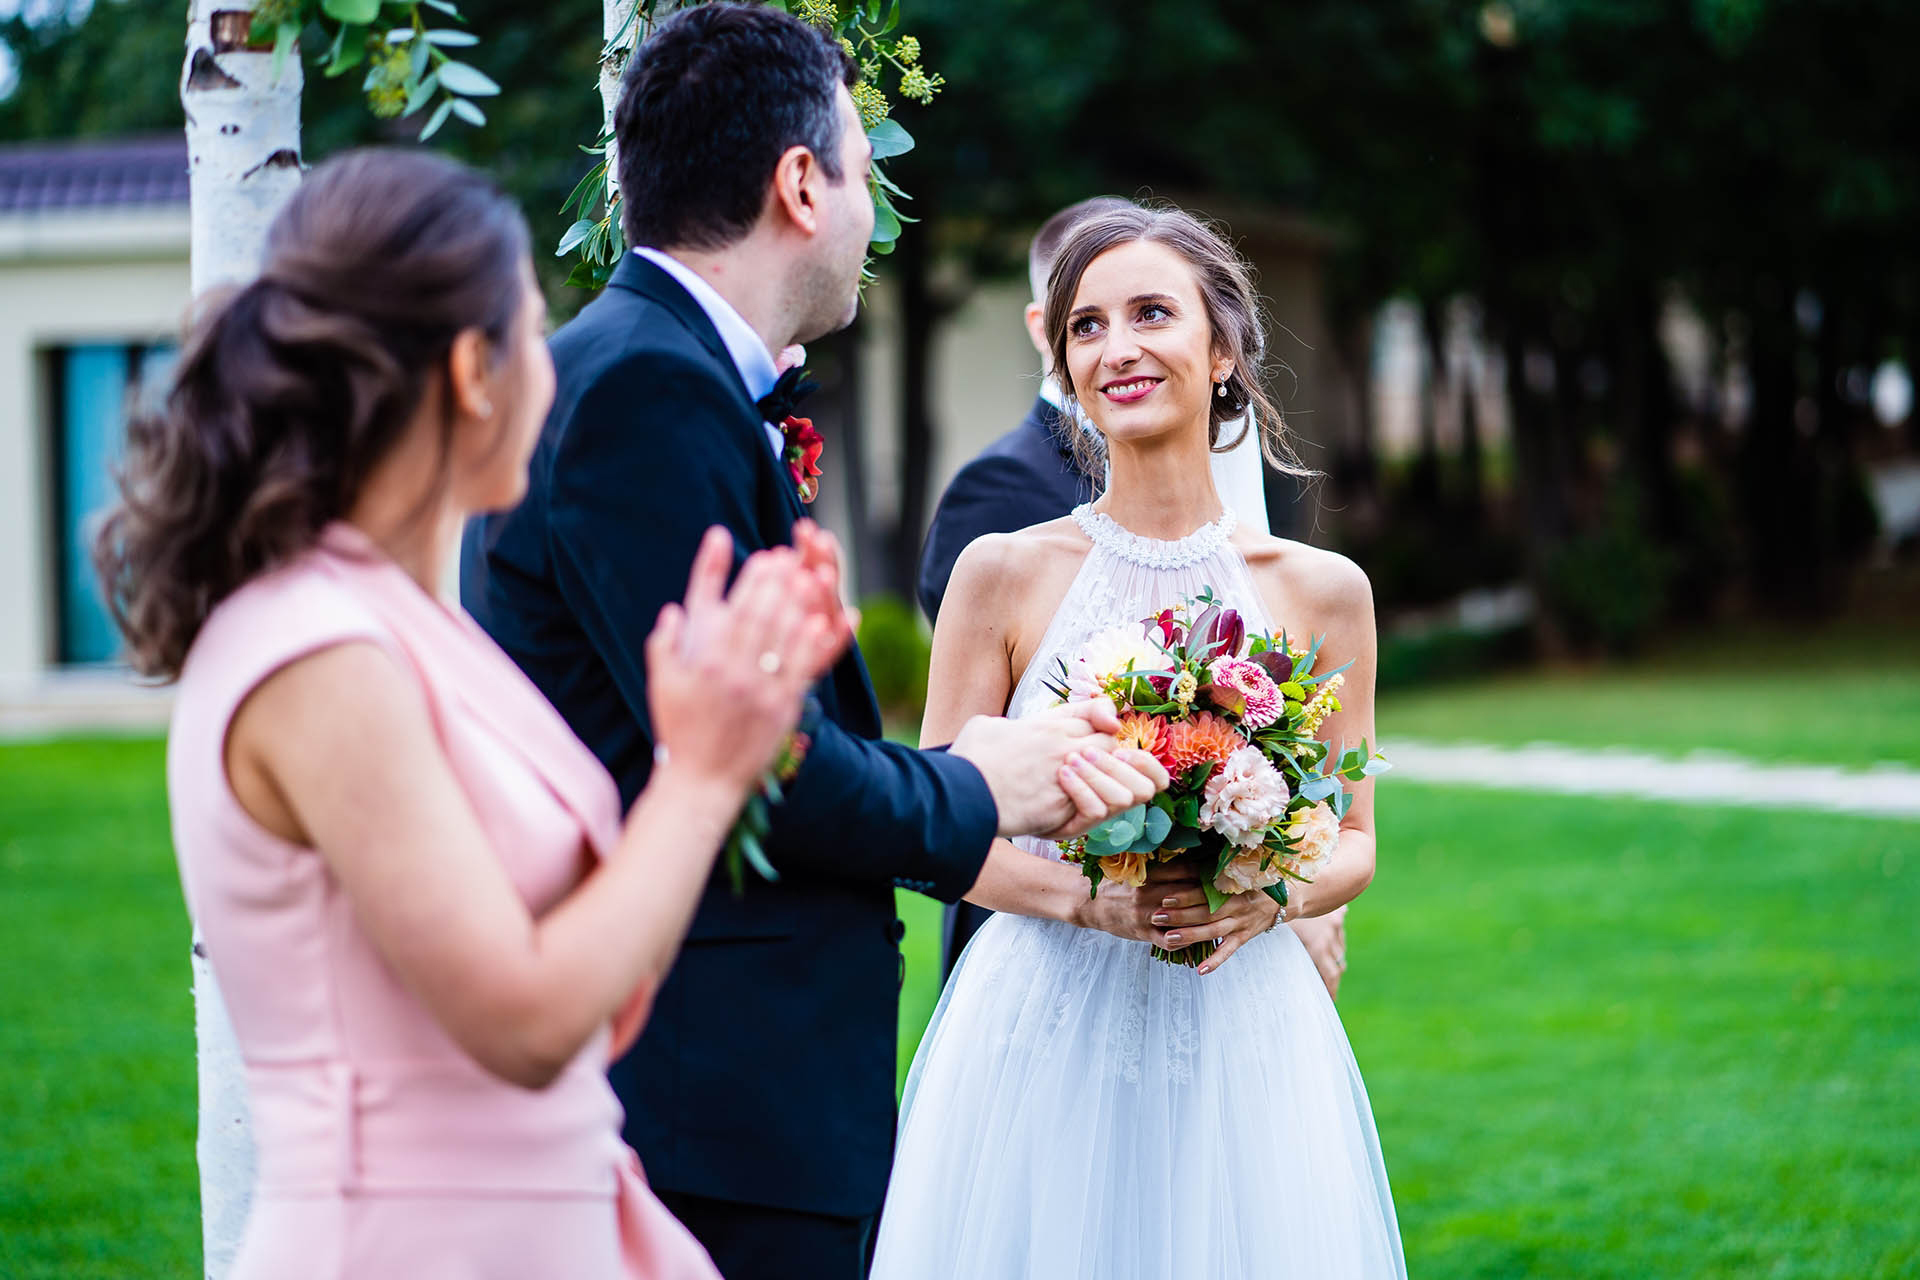 Villa Ekaterina Wedding Photographer - Vakarel, Bulgaria | The bride looks into the groom's eyes